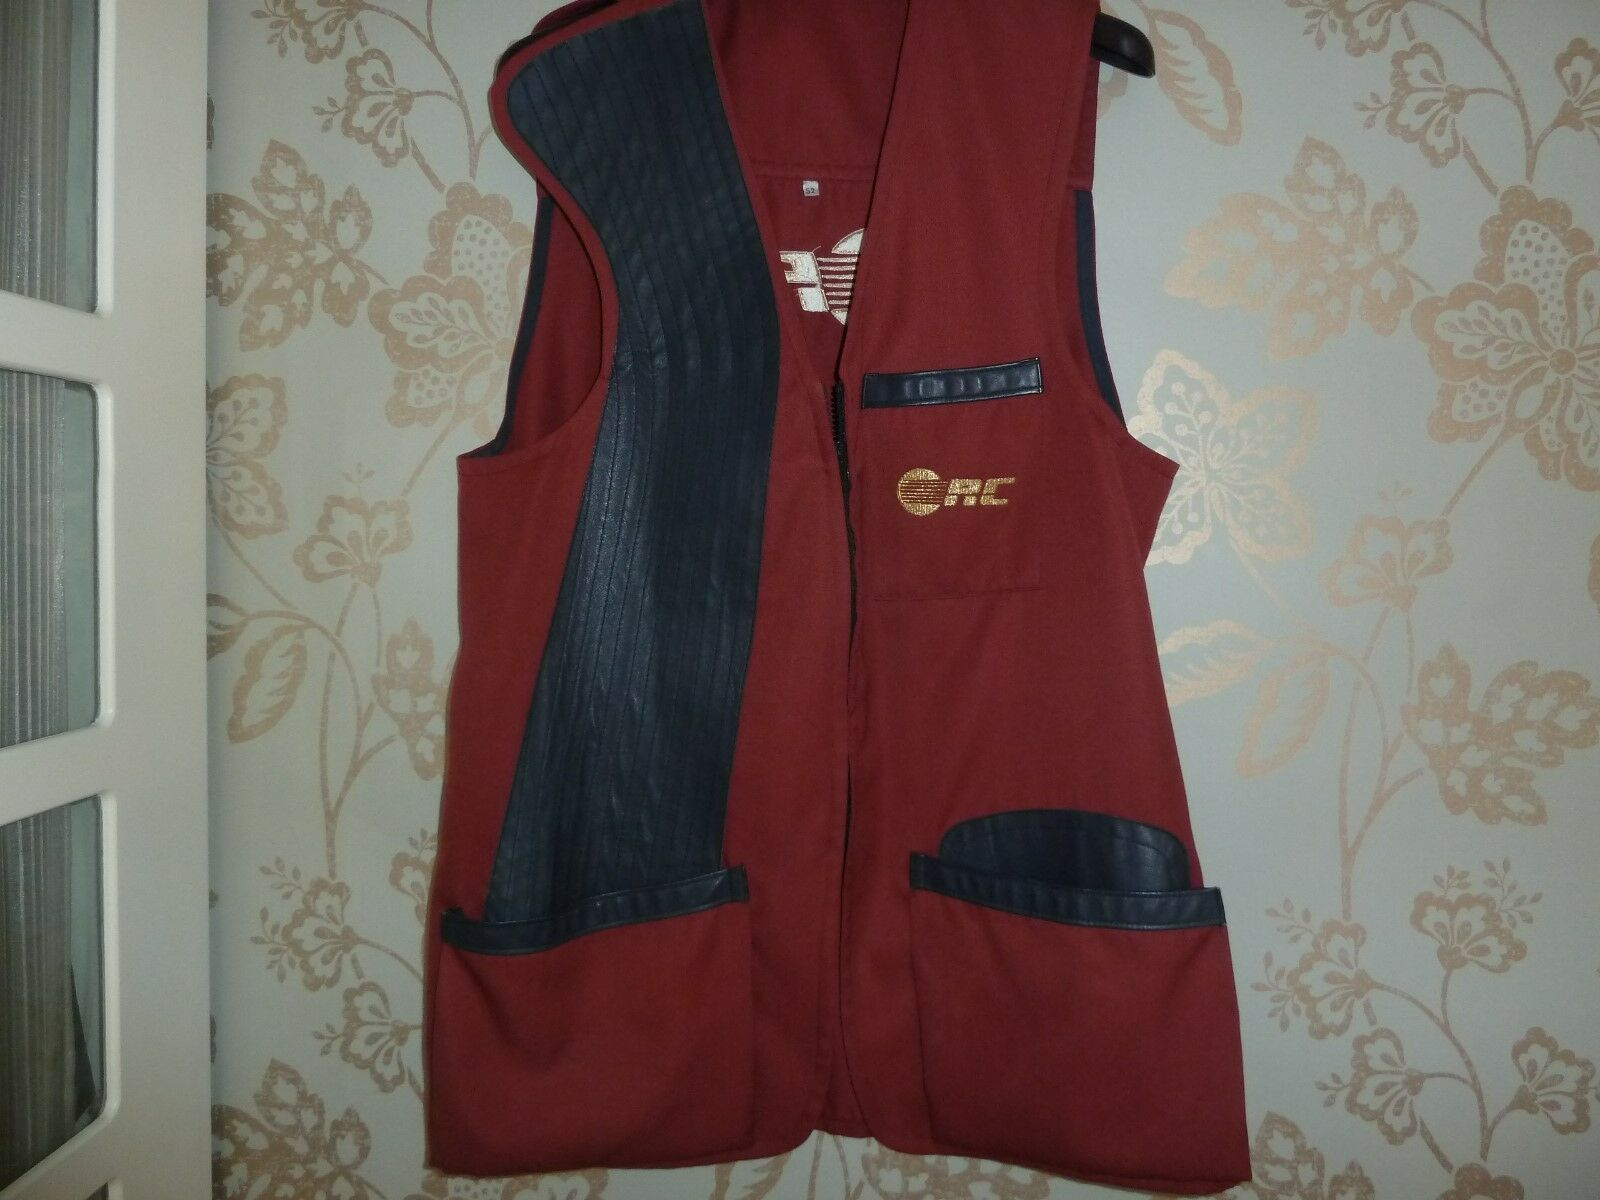 'RC' Clay Pigeon Shooting Vest Coat